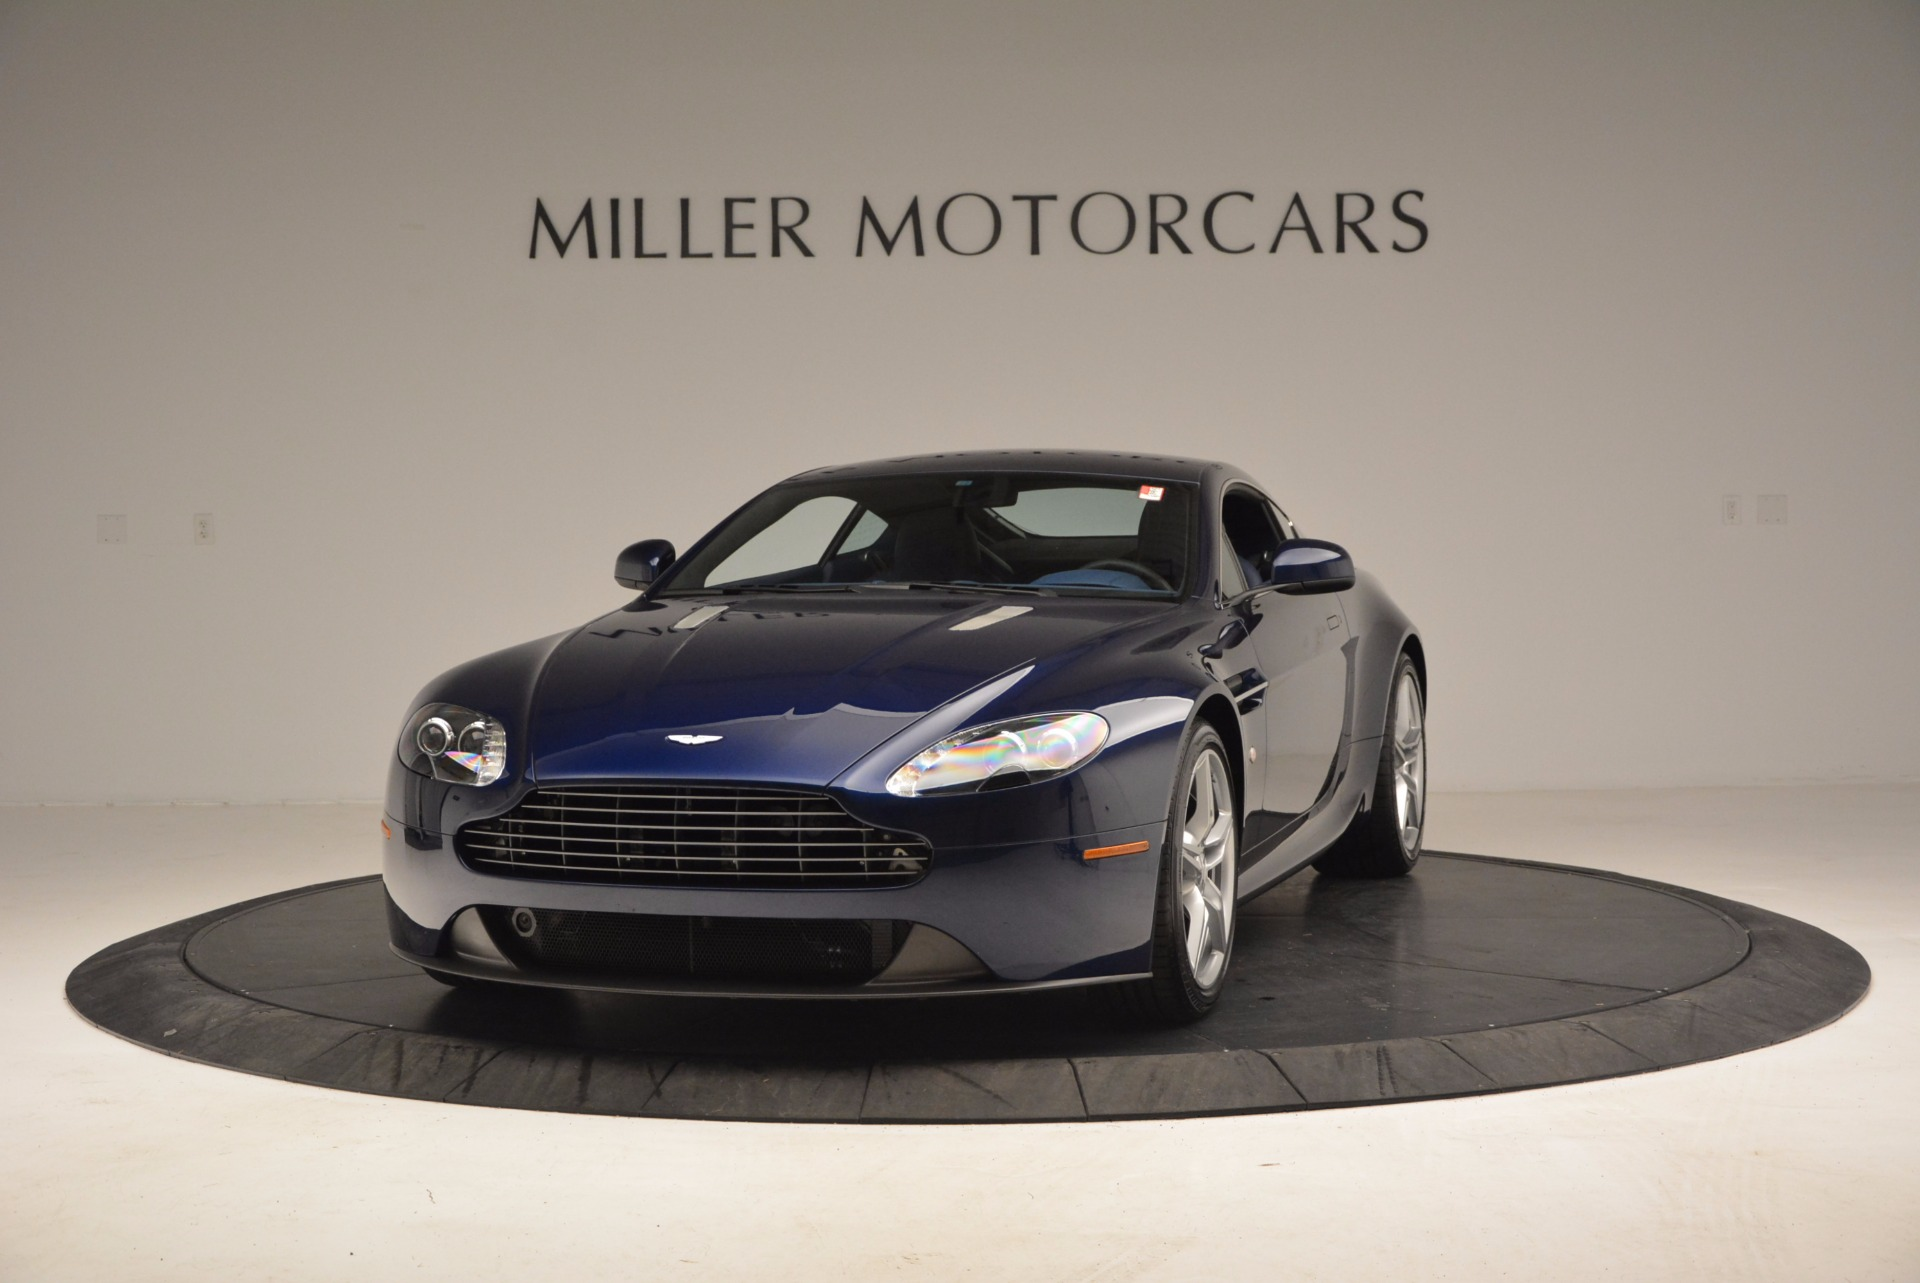 New 2016 Aston Martin V8 Vantage for sale Sold at Pagani of Greenwich in Greenwich CT 06830 1